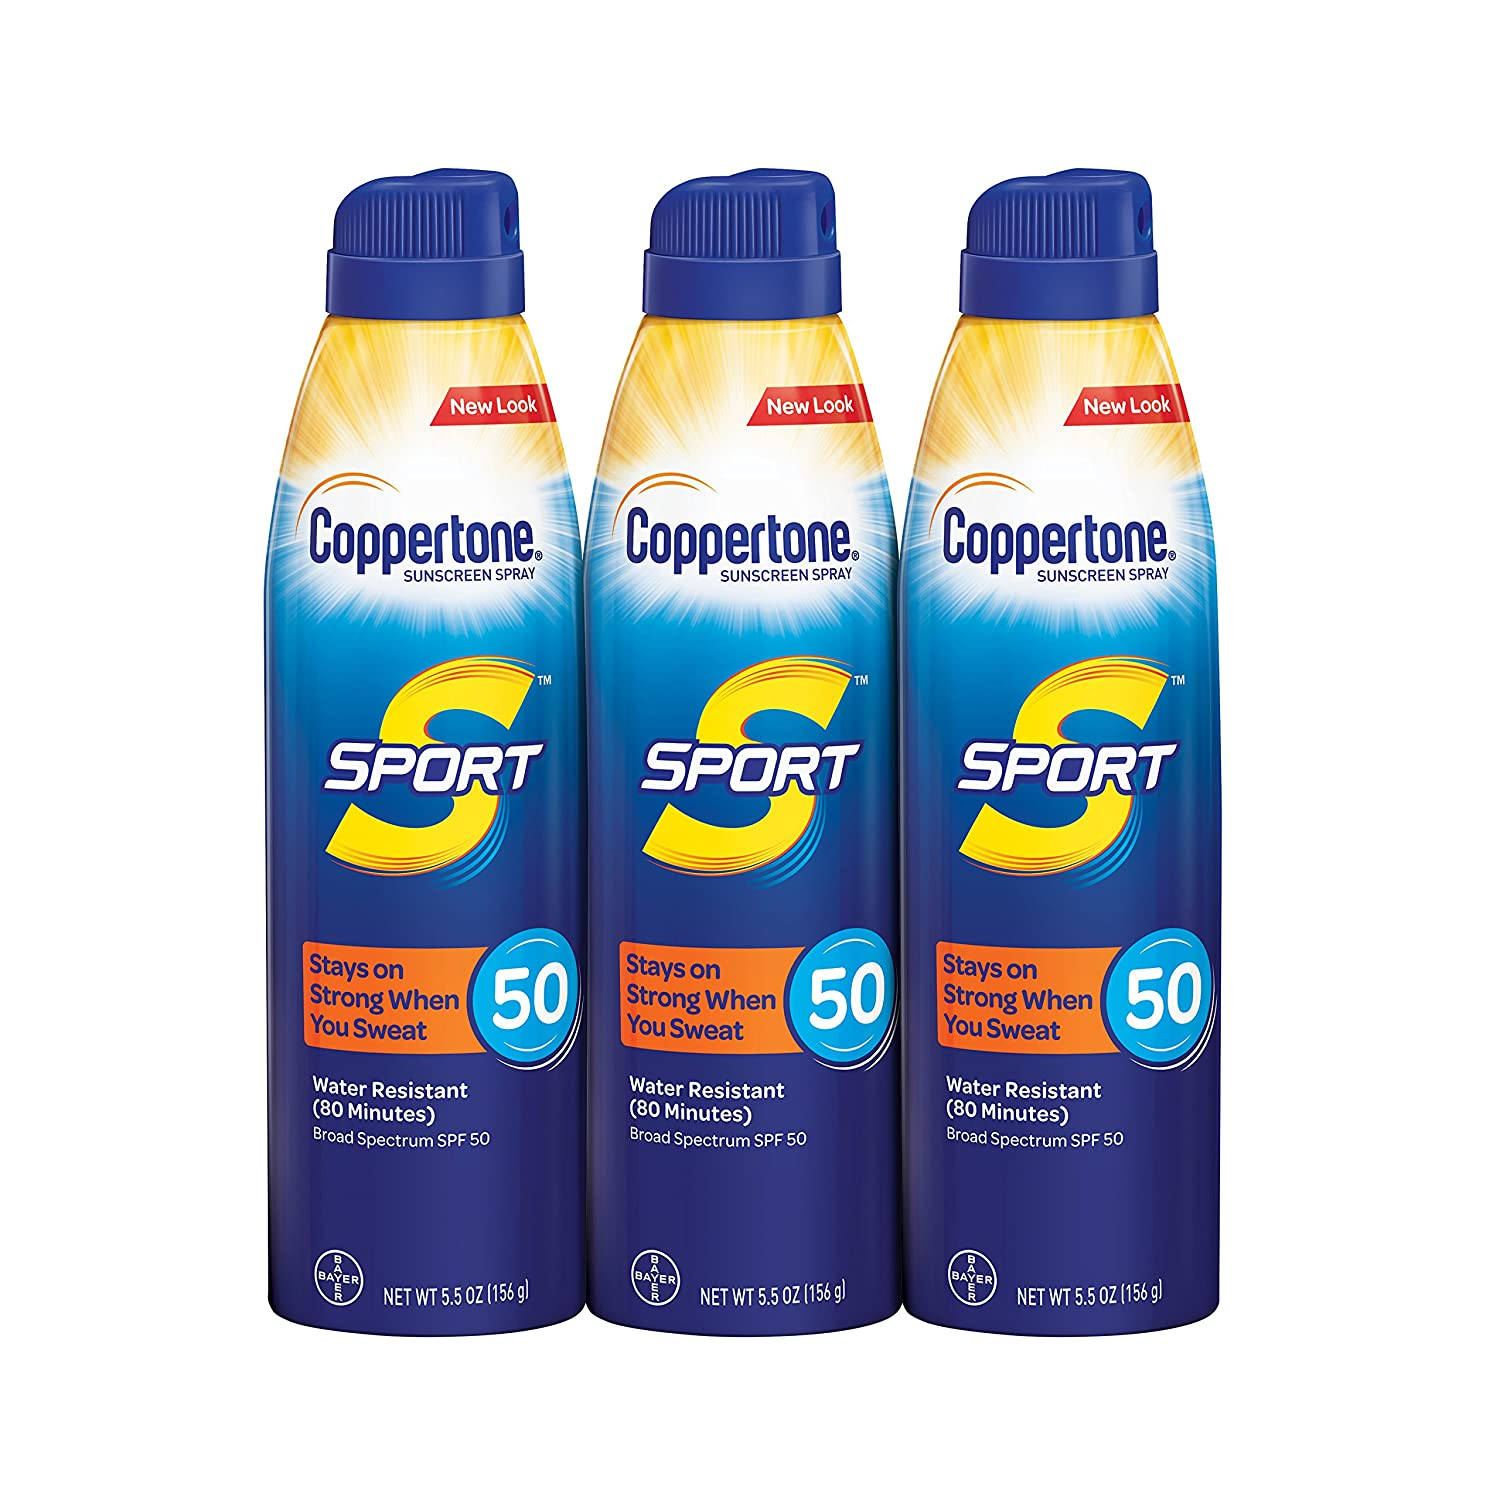 SPF 50, Spray 5.5 oz 3 Pack : Coppertone SPORT Continuous Sunscreen Spray  Broad Spectrum SPF 50 Multipack (5.5 Ounce Bottle, Pack of 3): Amazon.in:  Beauty